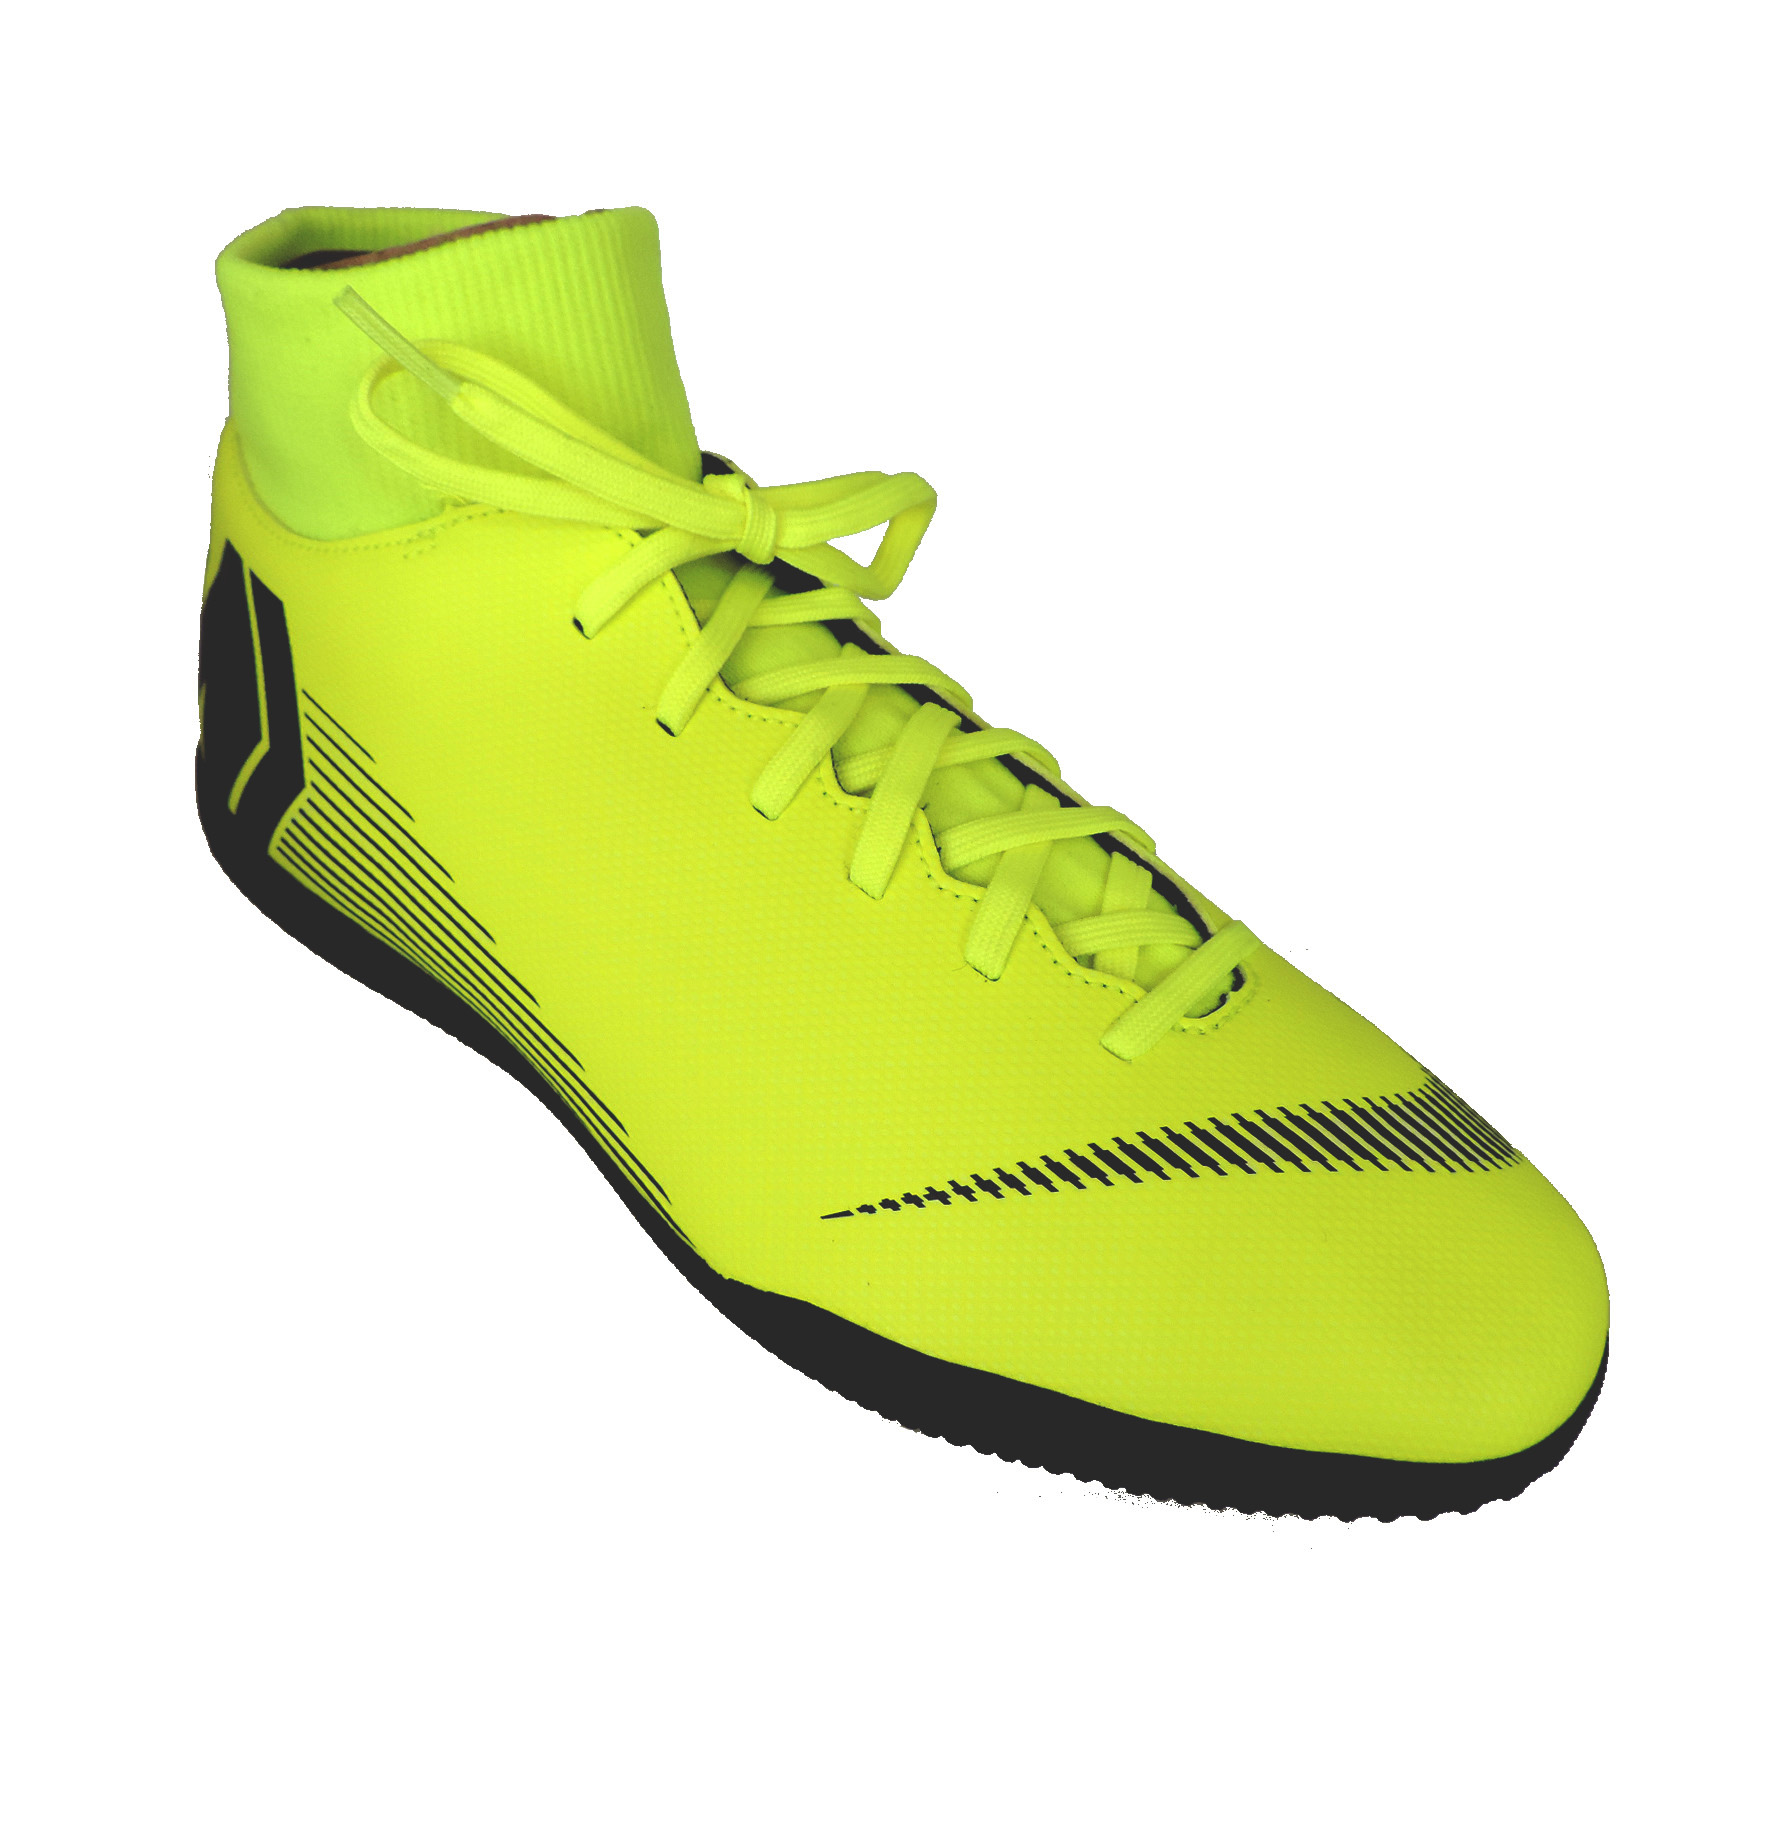 Chuteira Nike Superfly 6 Club Volt/Black